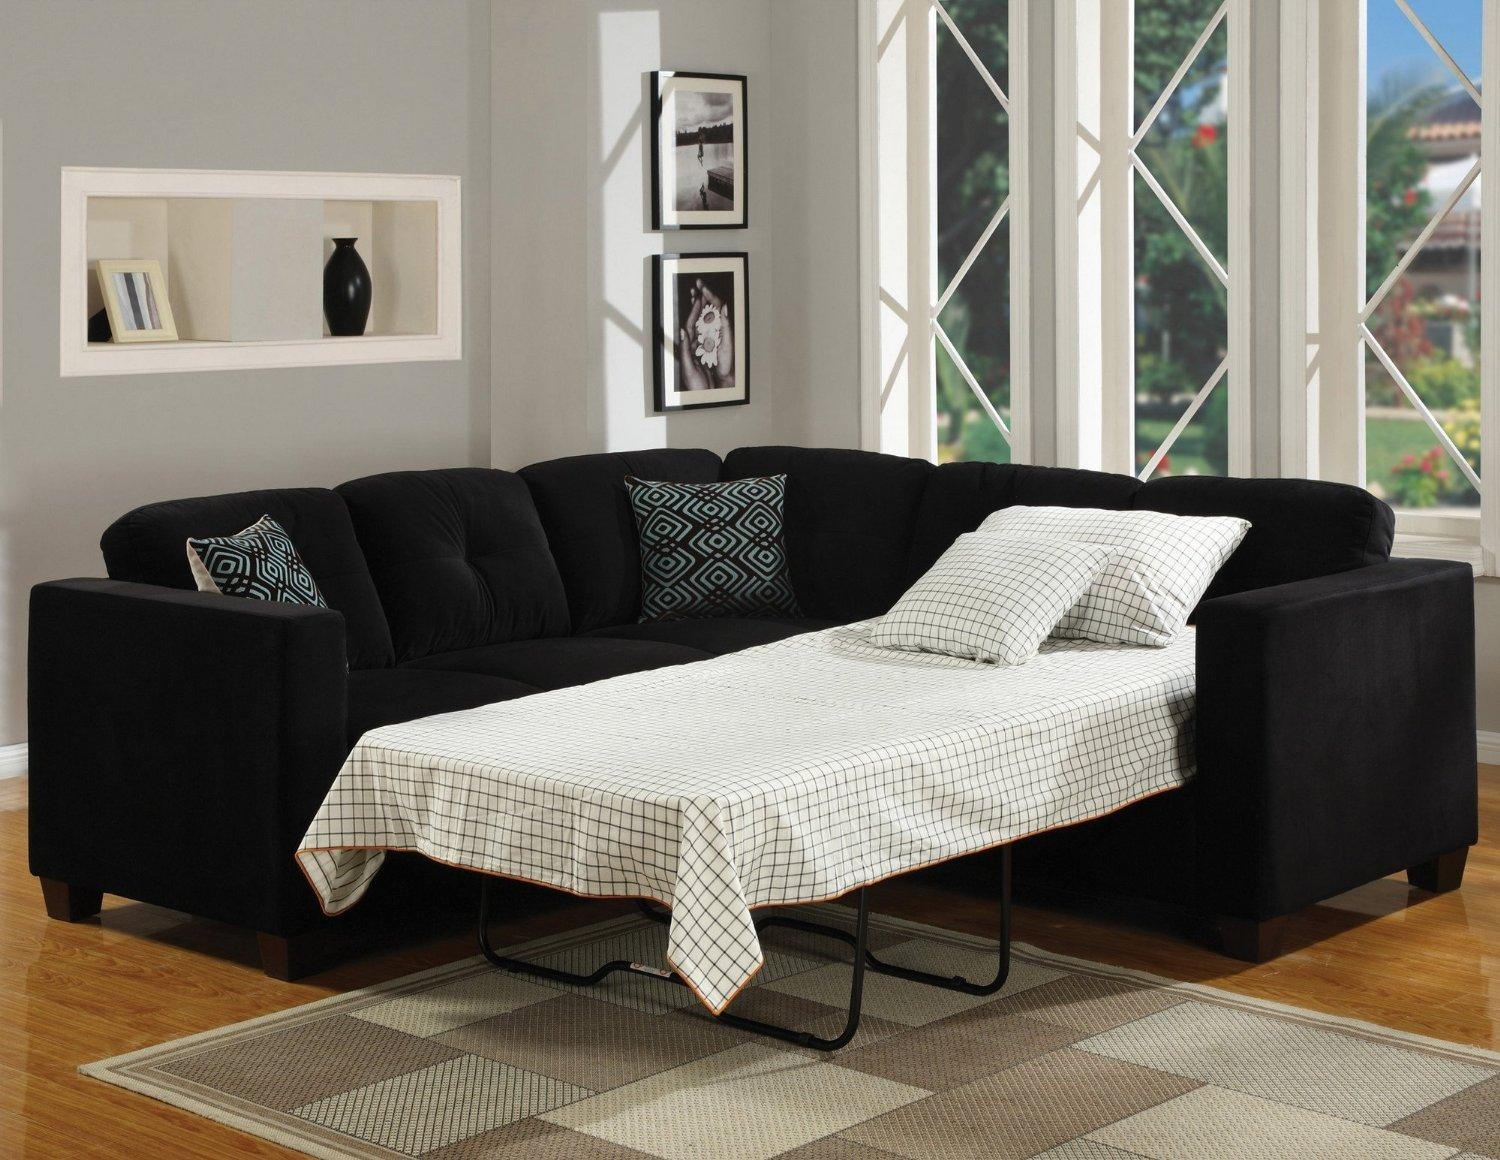 Sectional Sofa For Small Spaces (Image 9 of 20)